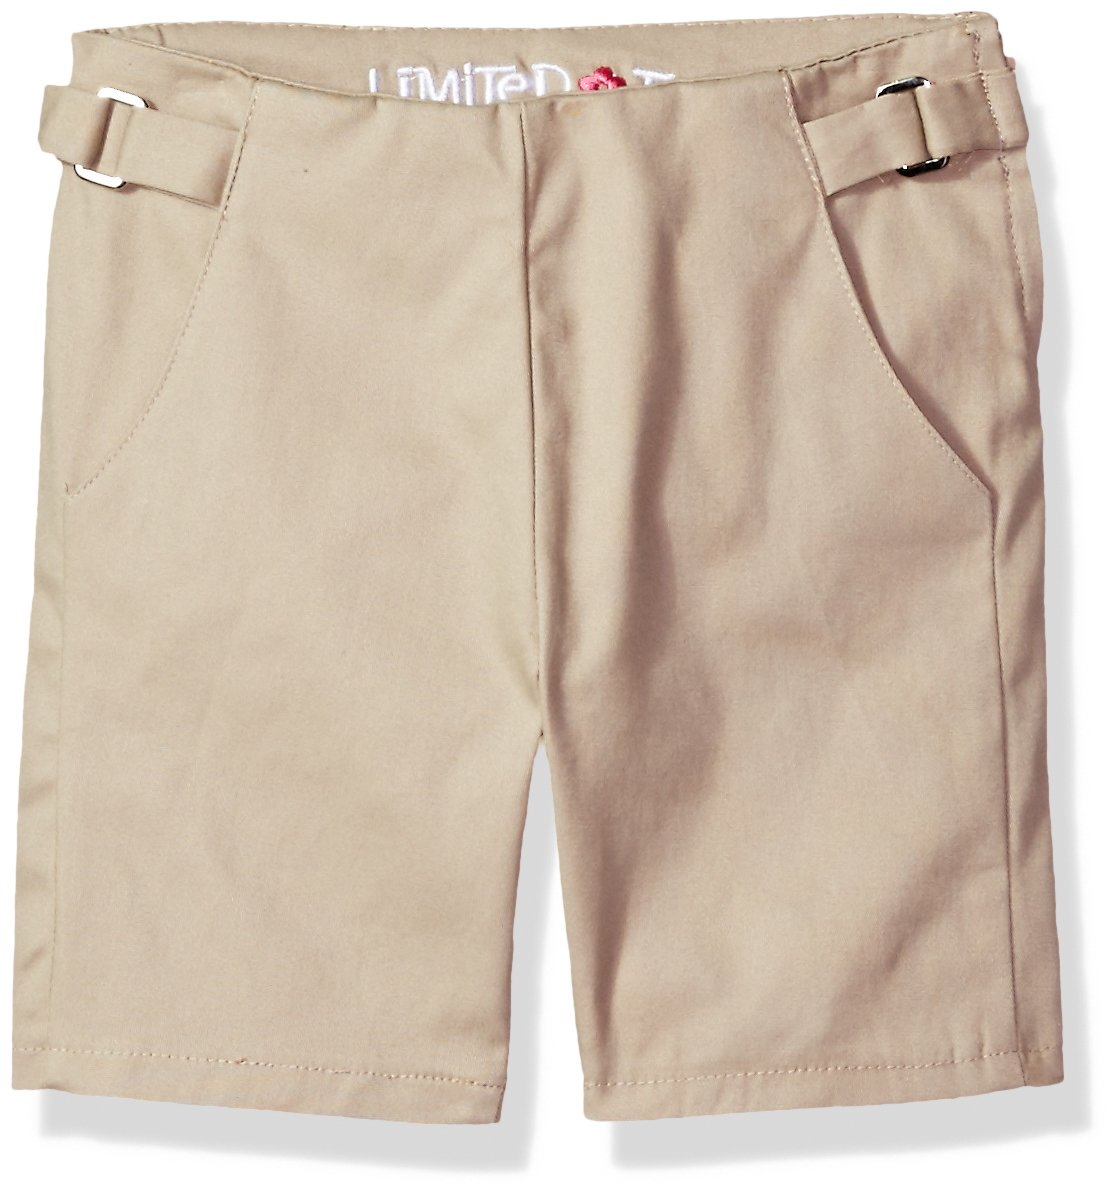 Limited Too Big Girls' Twill Short (More Styles Available), Khaki-CAHC, 7